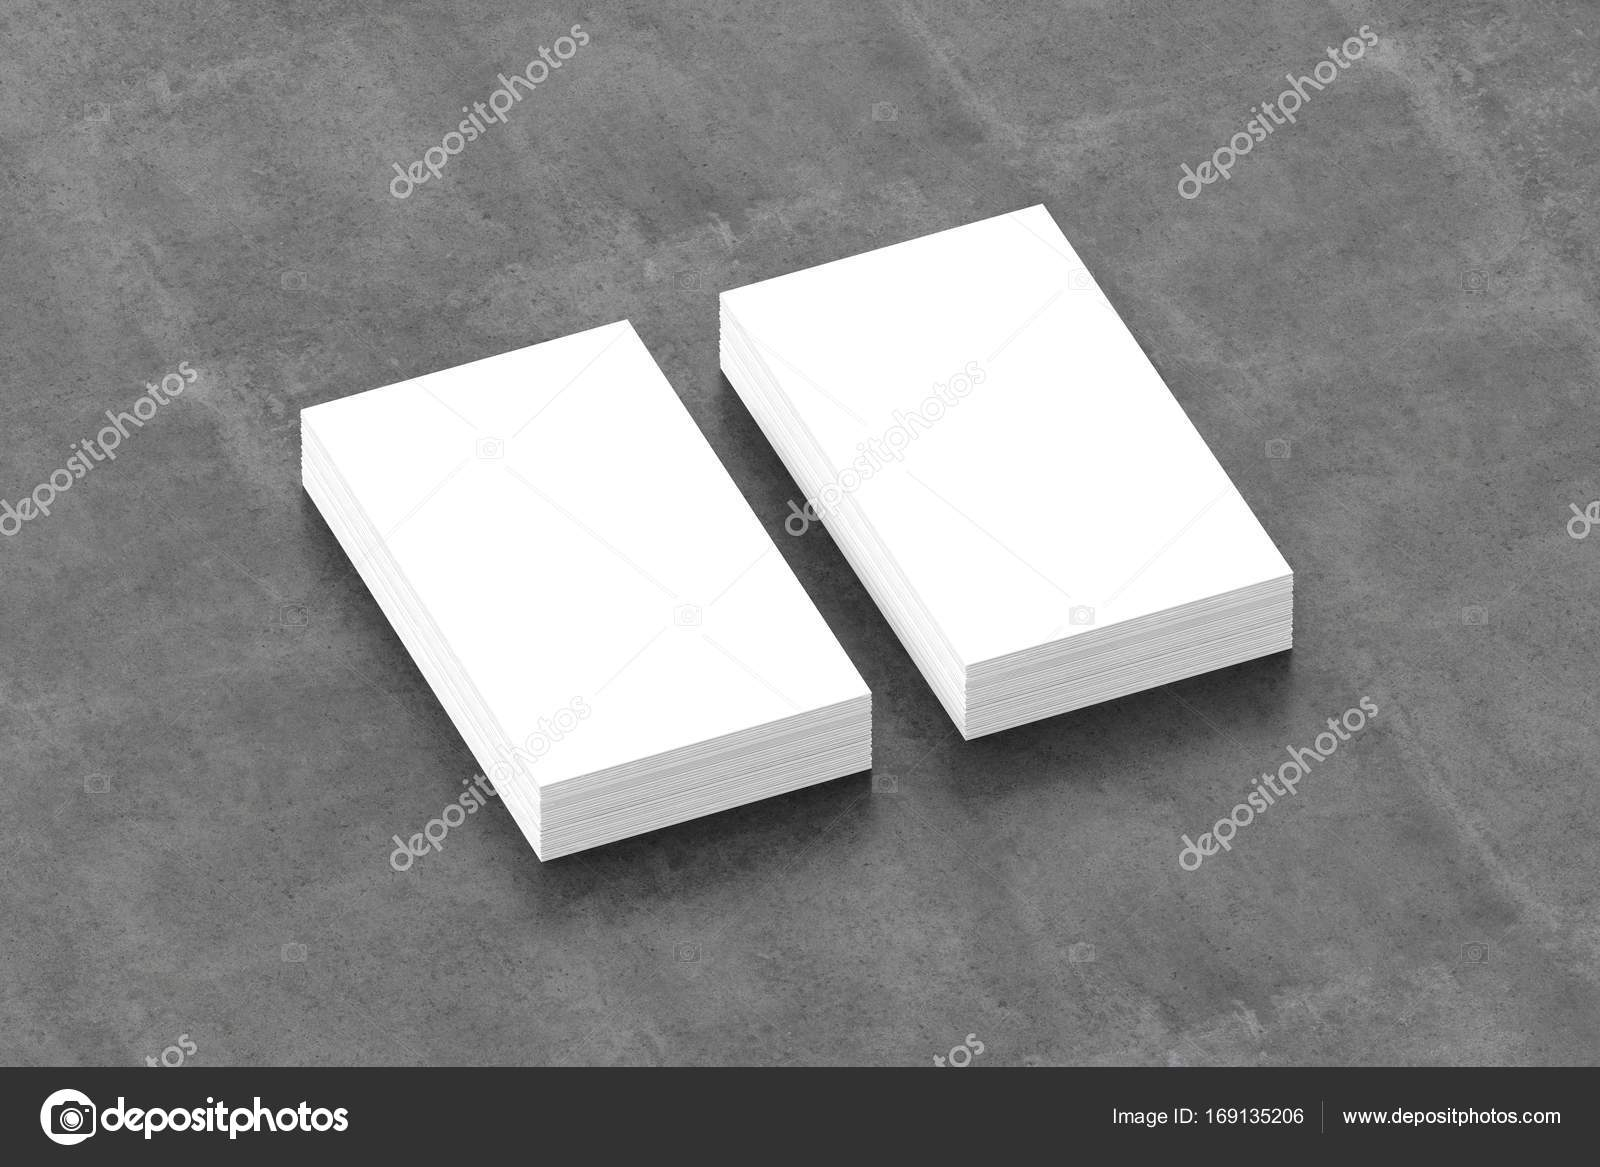 Business cards blank mockup template 3d illustration stock business cards blank mockup template 3d illustration photo by daliborzivotic fbccfo Image collections